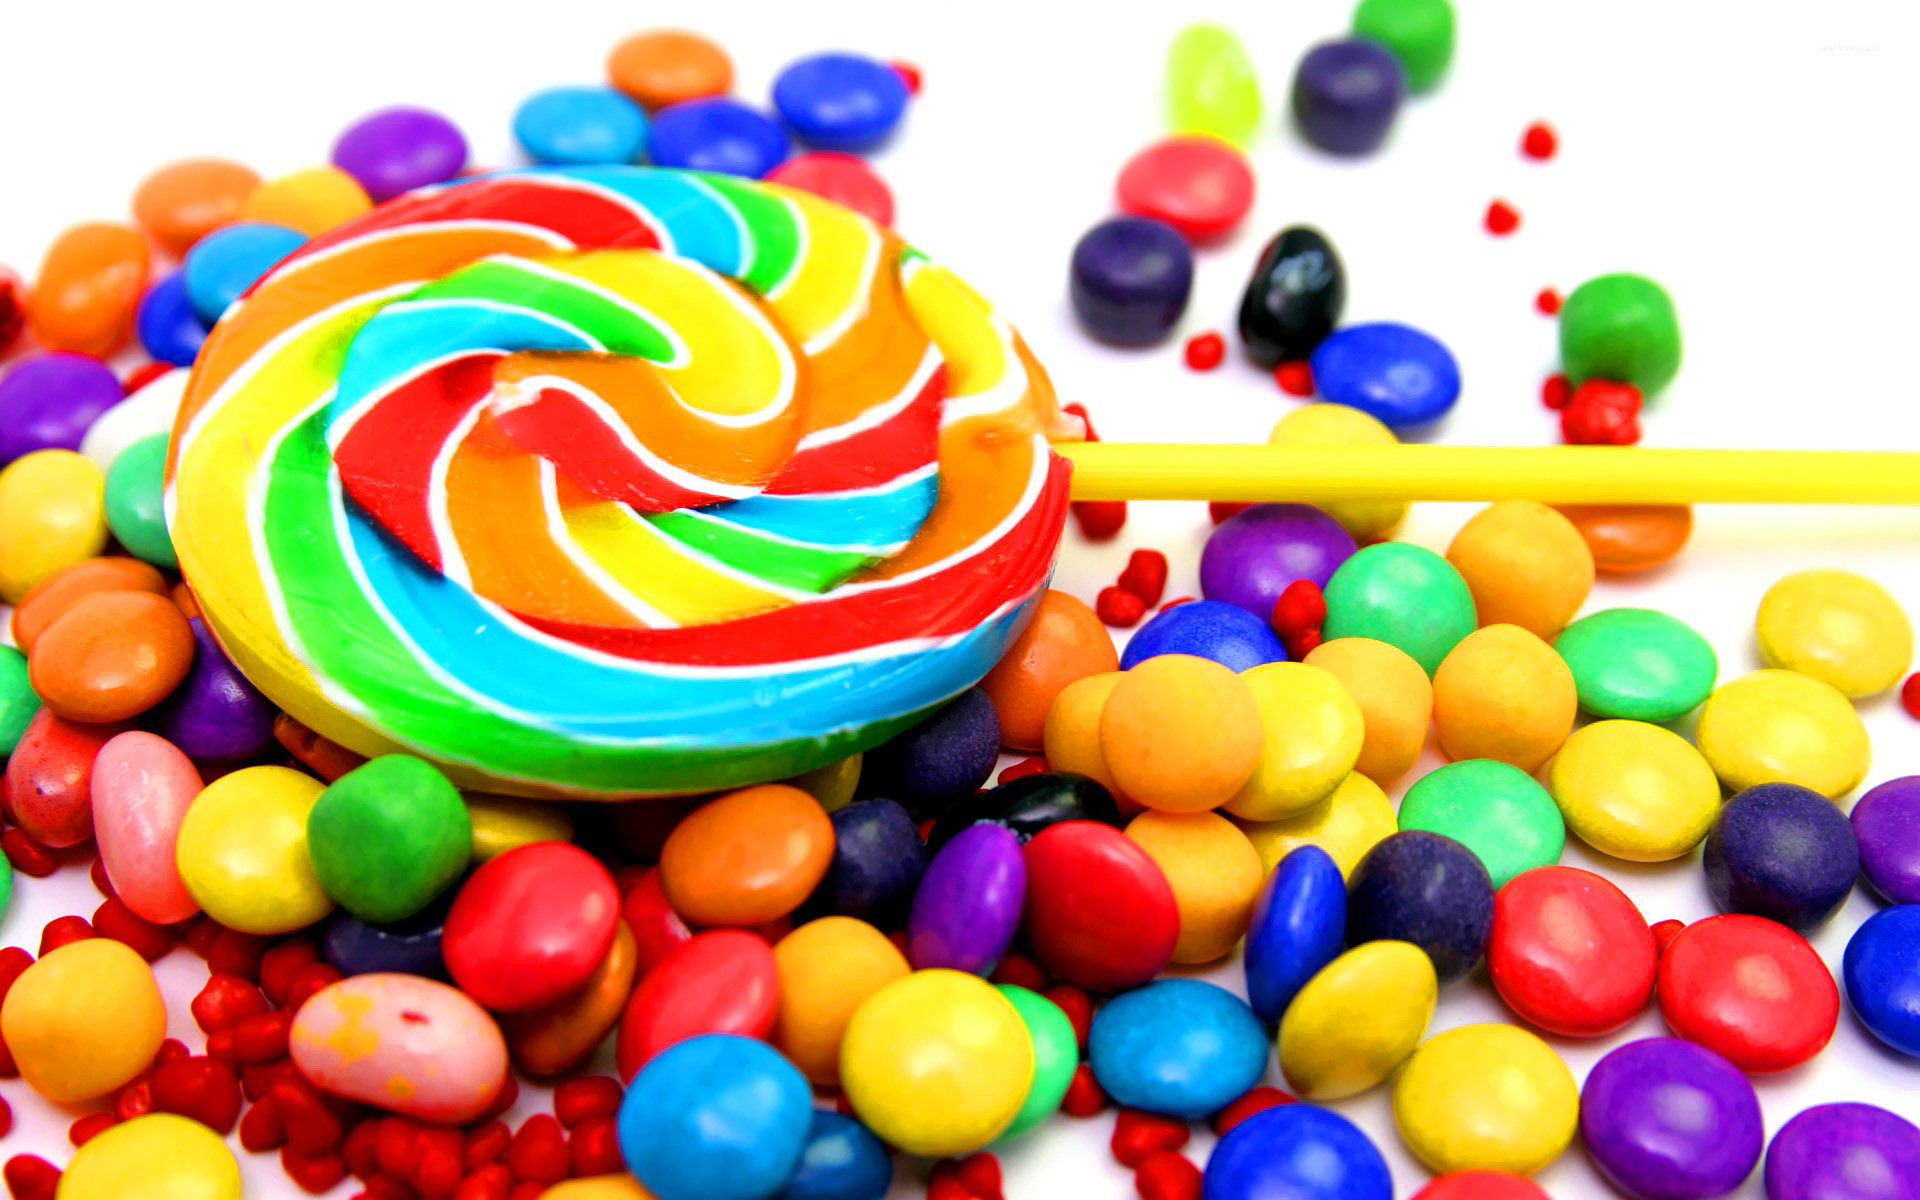 Filename: colorful-candy-18822-1920×1200.jpg